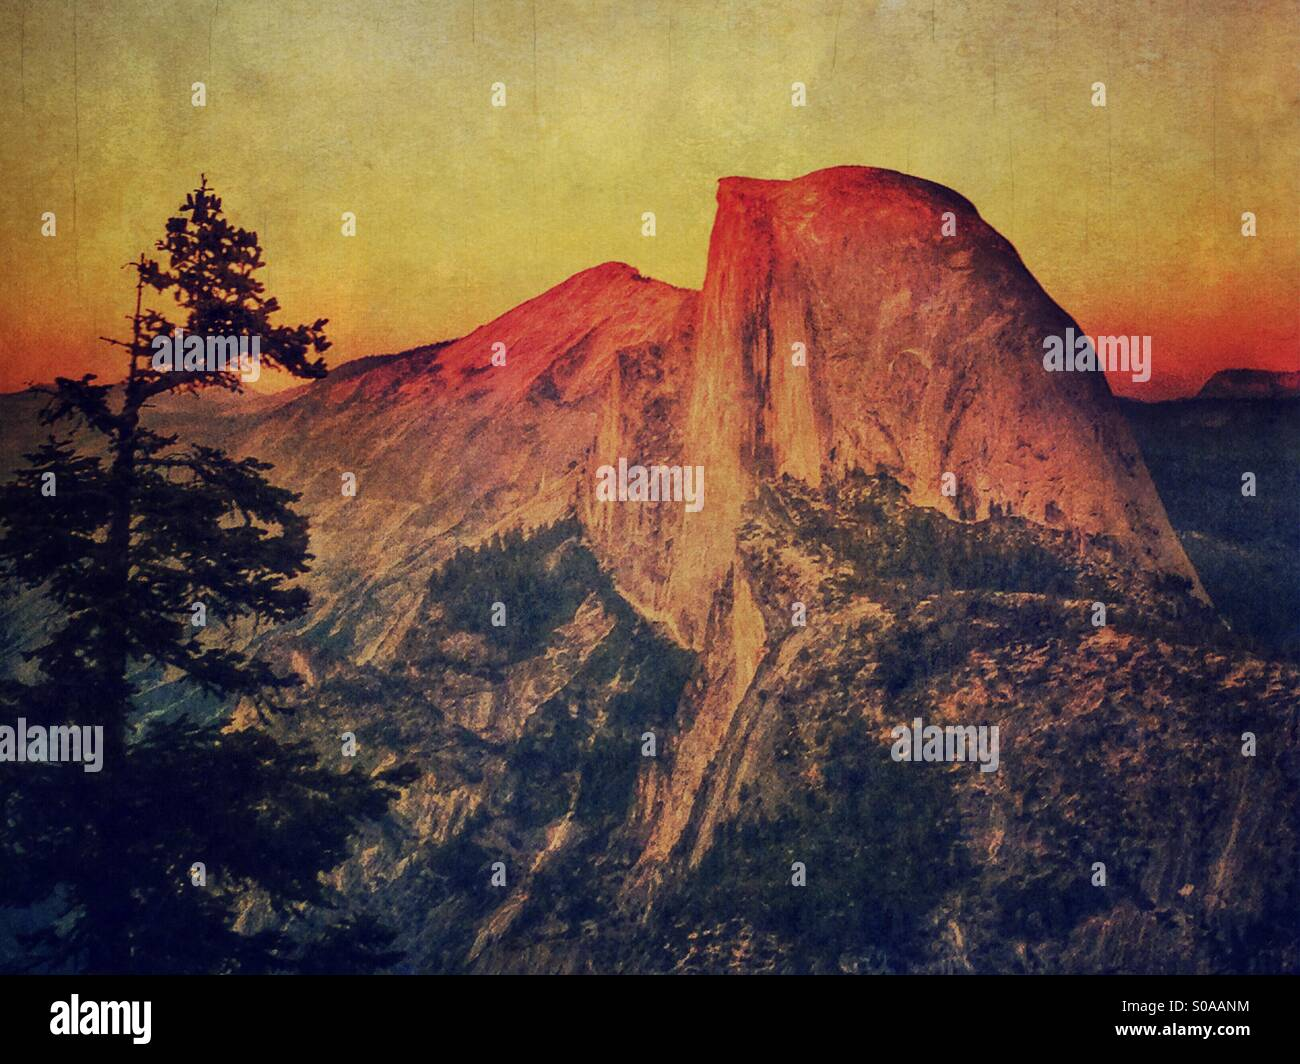 Halfdome im Yosemite National Park. Stockbild